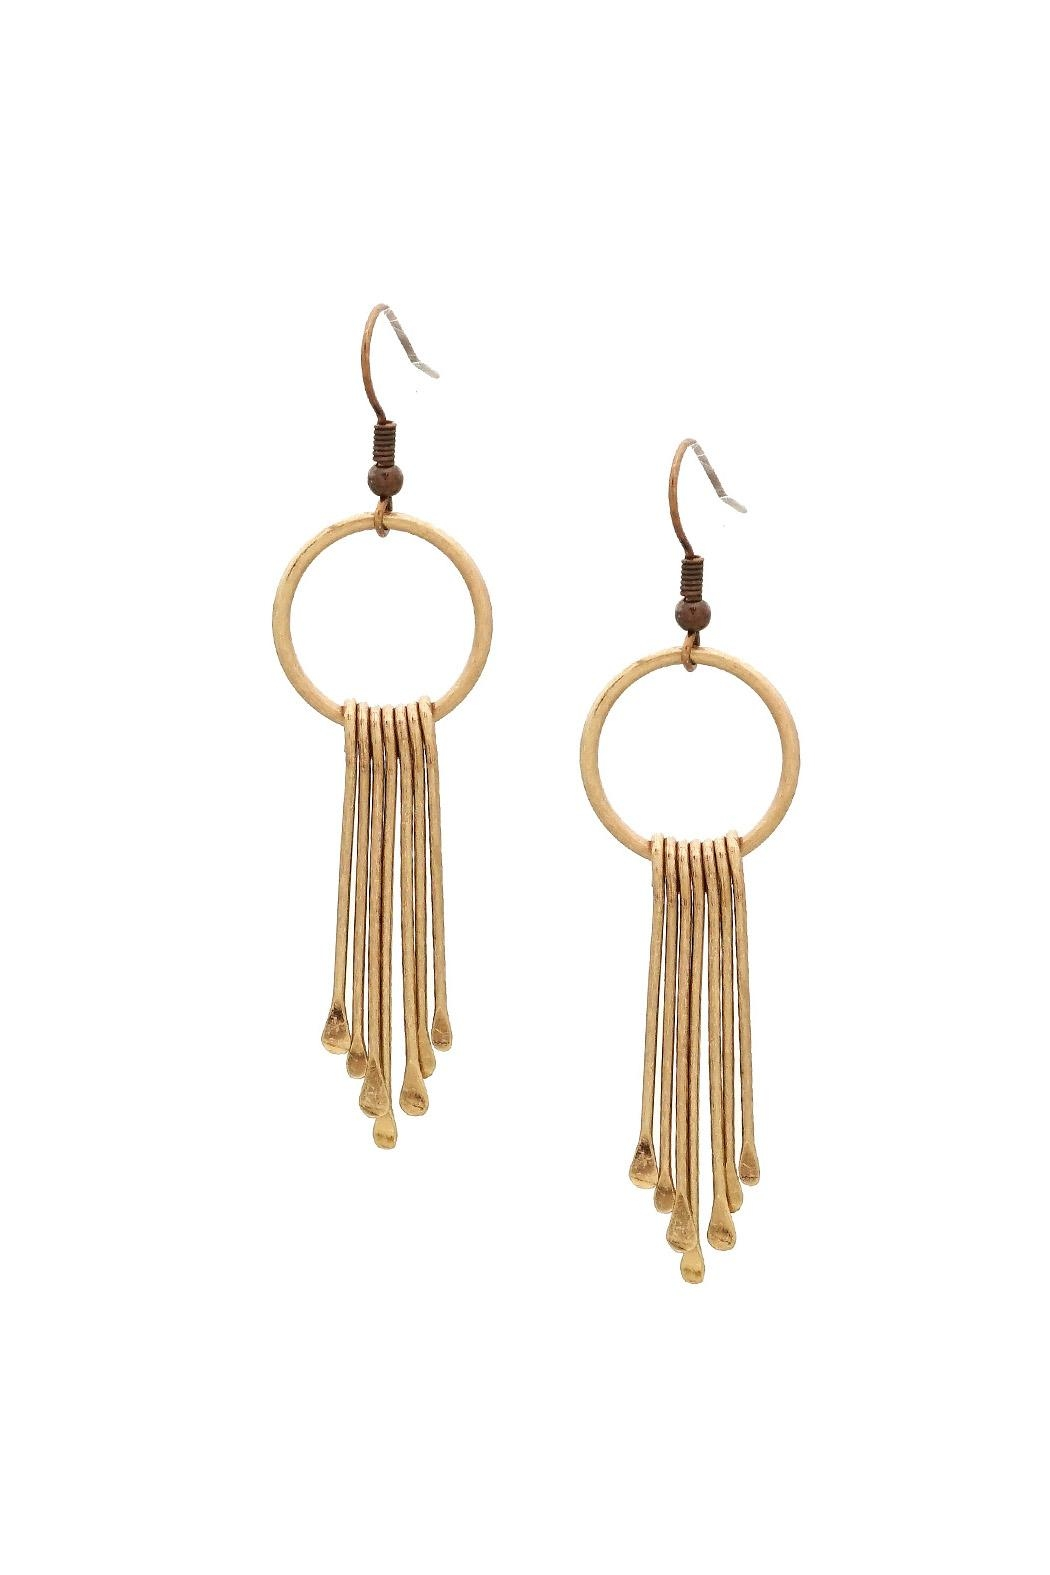 1c0700846af8af Wild Lilies Jewelry Gold Bar Earrings from Philadelphia by Wild ...